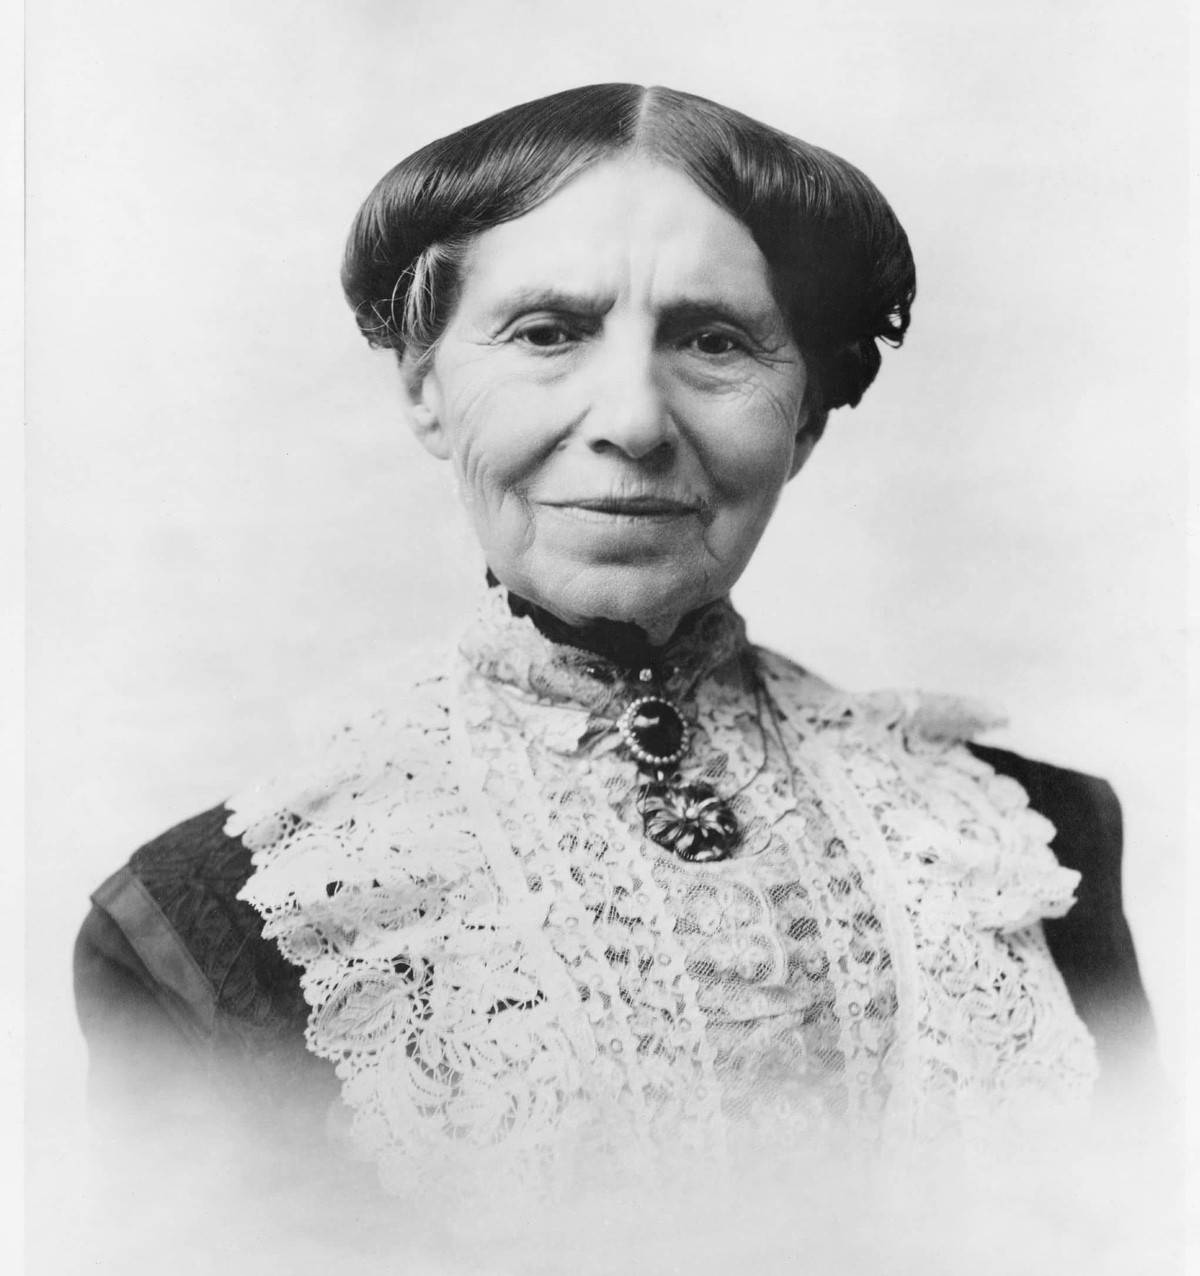 Clara Barton risked her life to bring supplies and support to soldiers in the field during the Civil War.